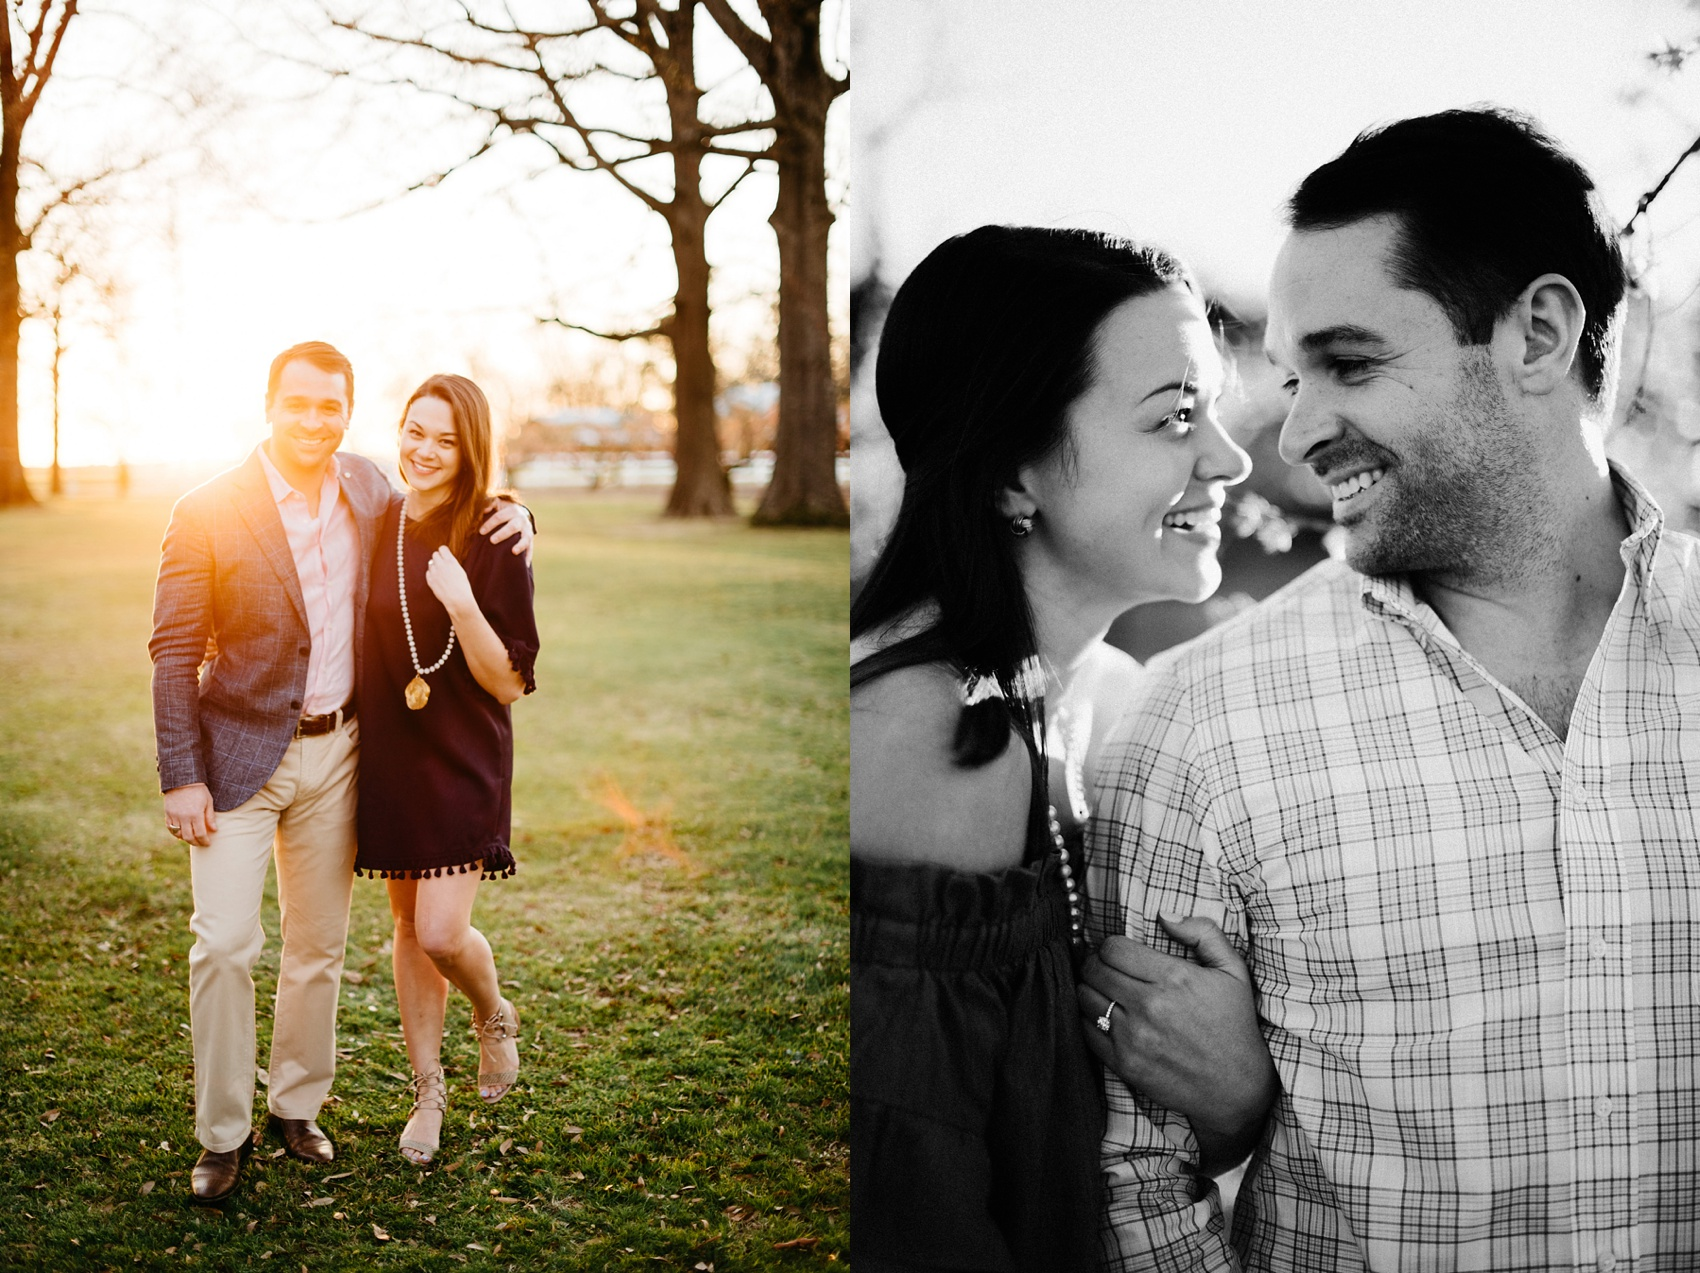 peachtree_engagement_session_1858.jpg